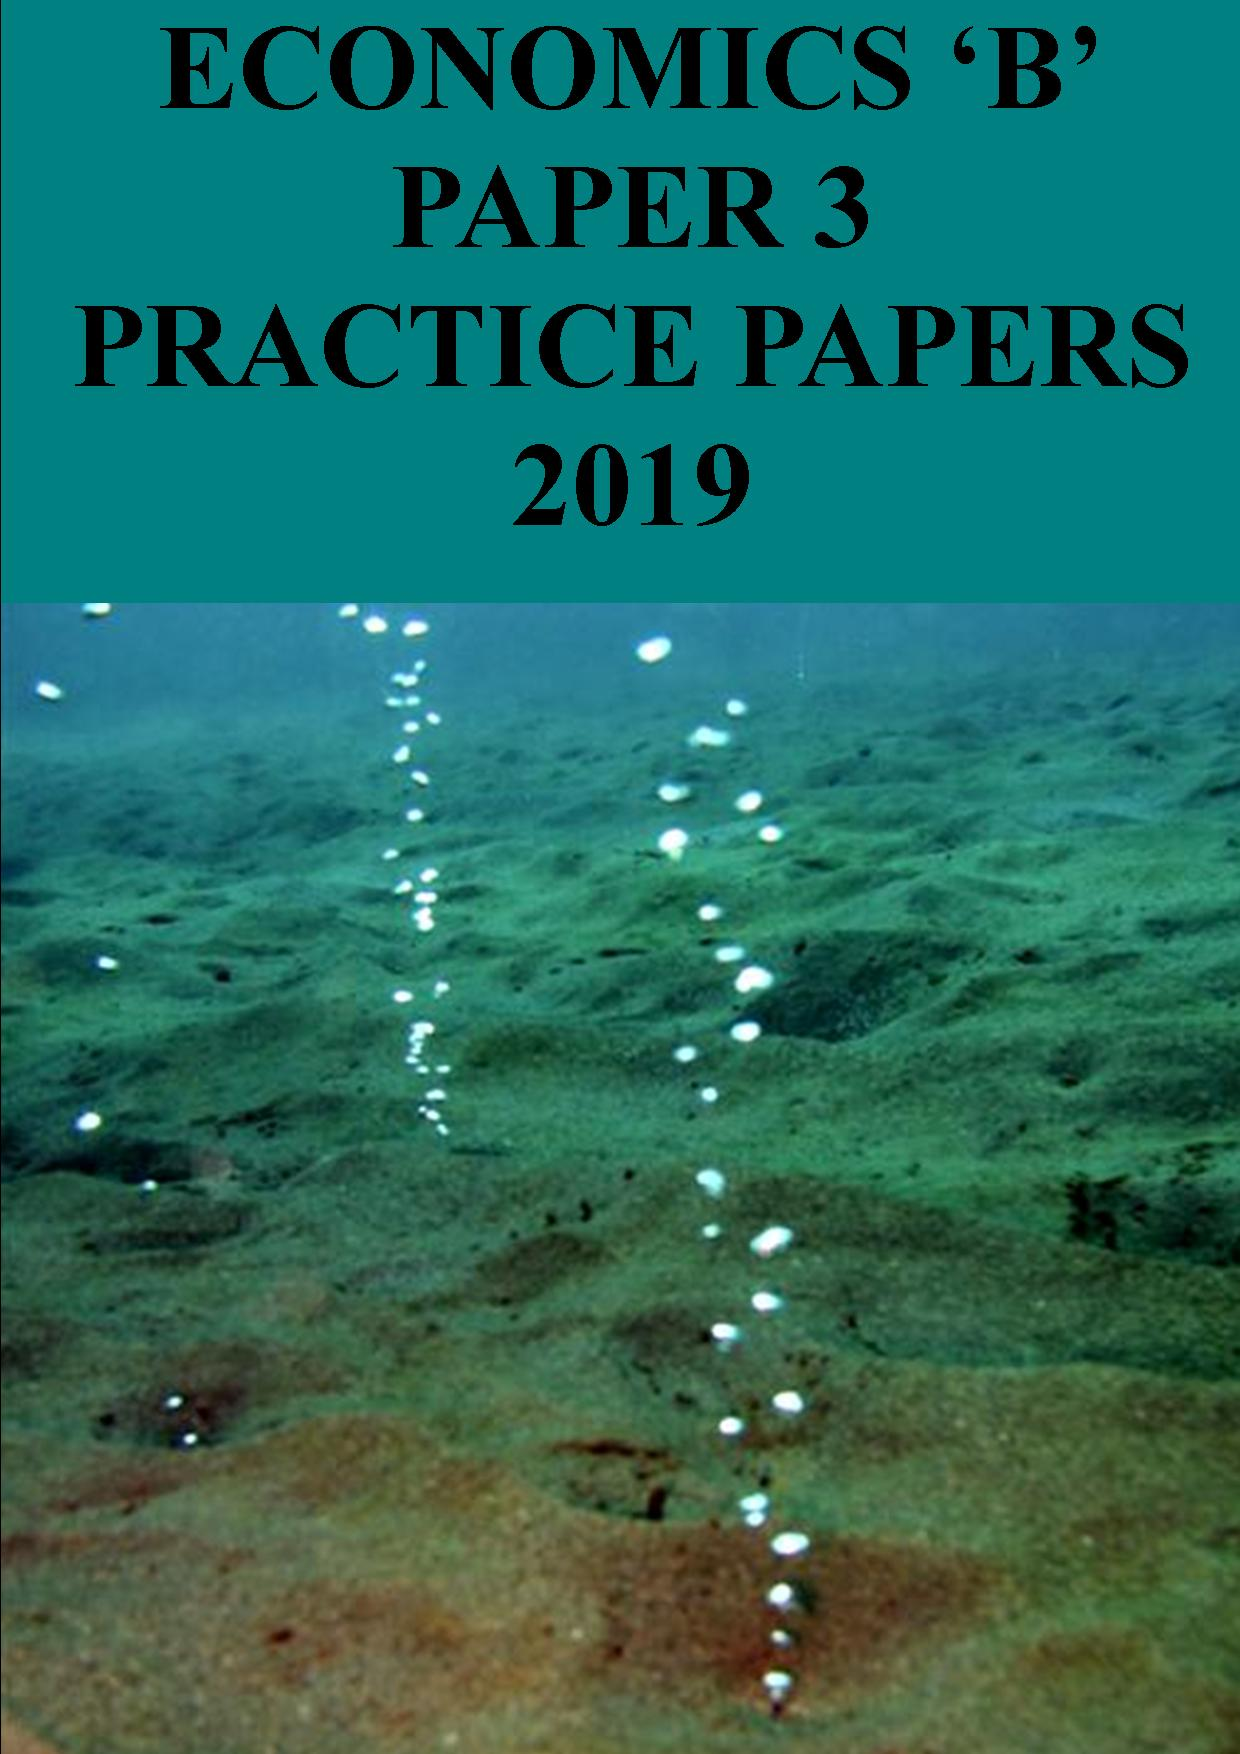 Paper 3 practice papers - 2019: labour